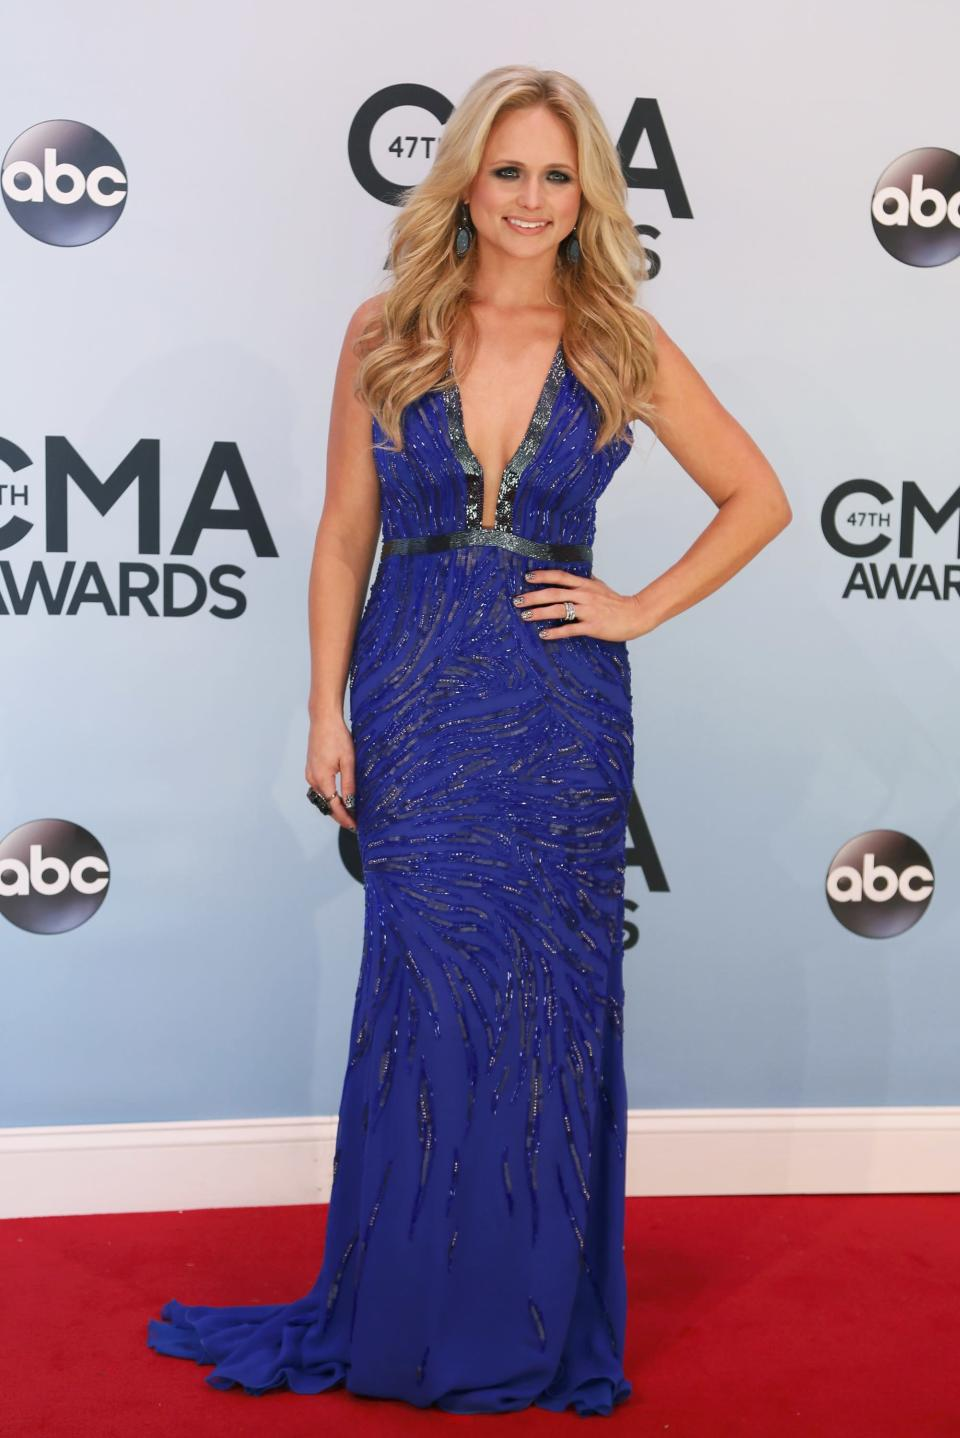 Singer Miranda Lambert arrives at the 47th Country Music Association Awards in Nashville, Tennessee November 6, 2013. REUTERS/Eric Henderson (UNITED STATES - Tags: ENTERTAINMENT)